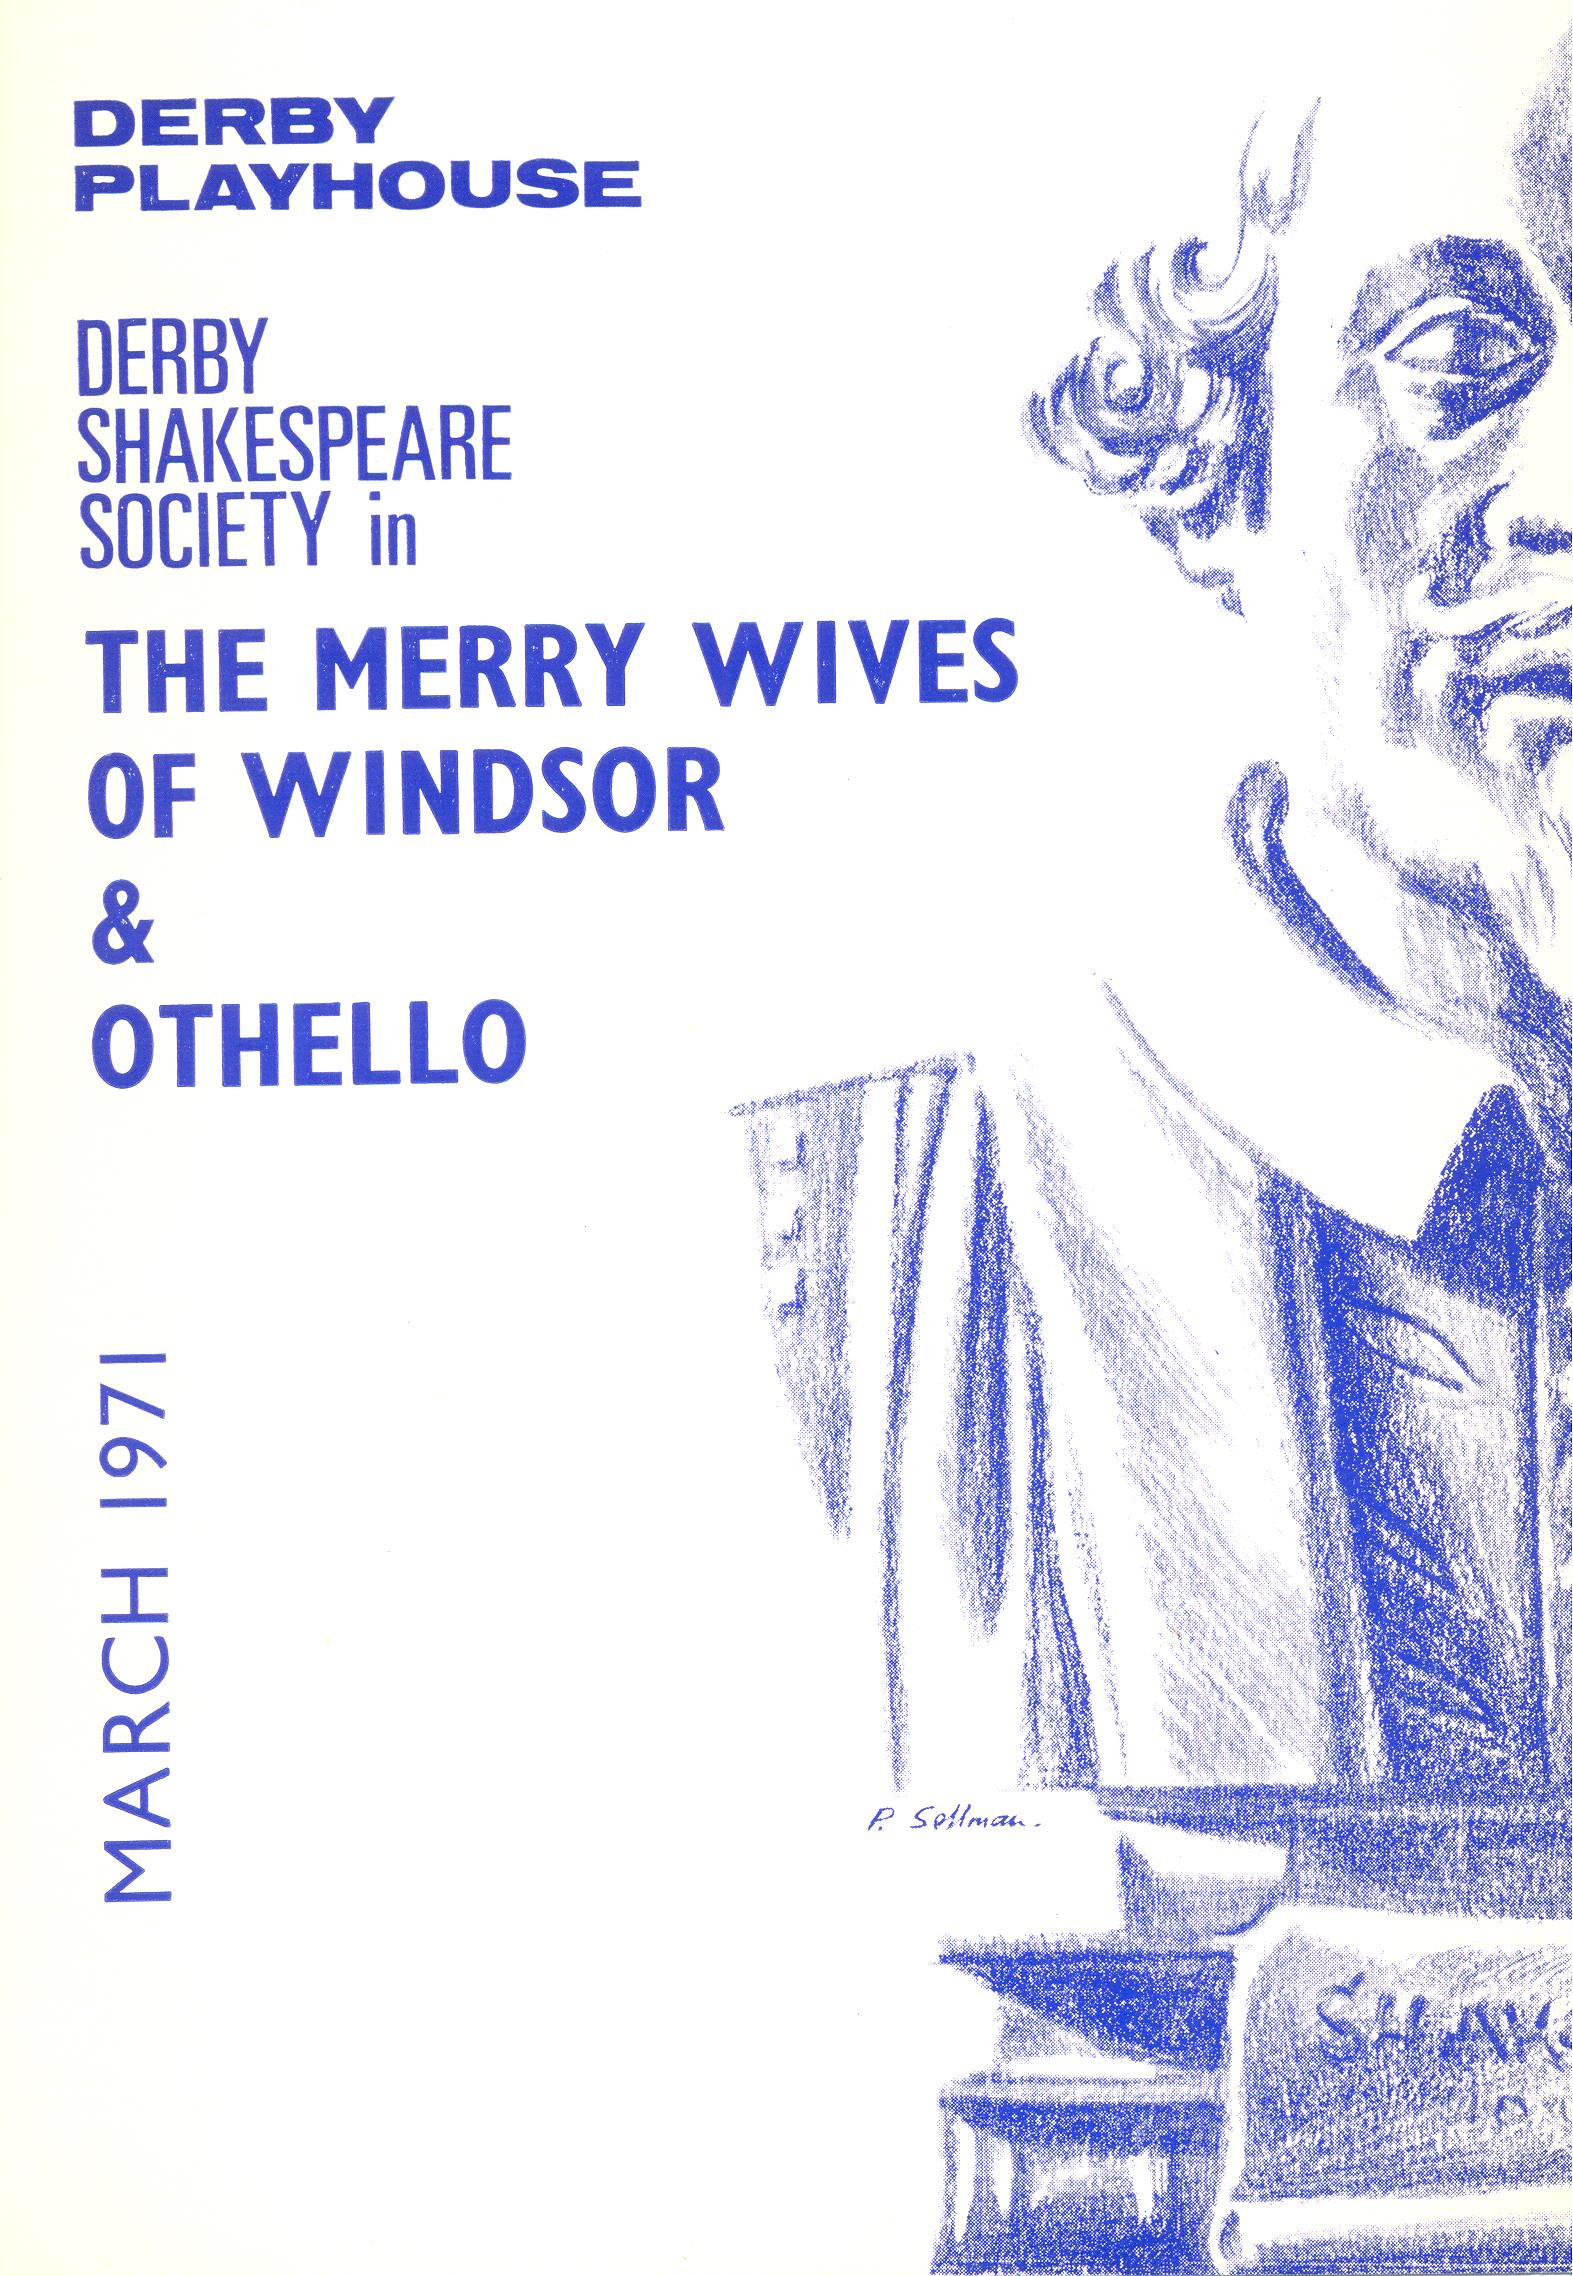 'The Merry Wives Of Windsor' & 'Othello' 1971